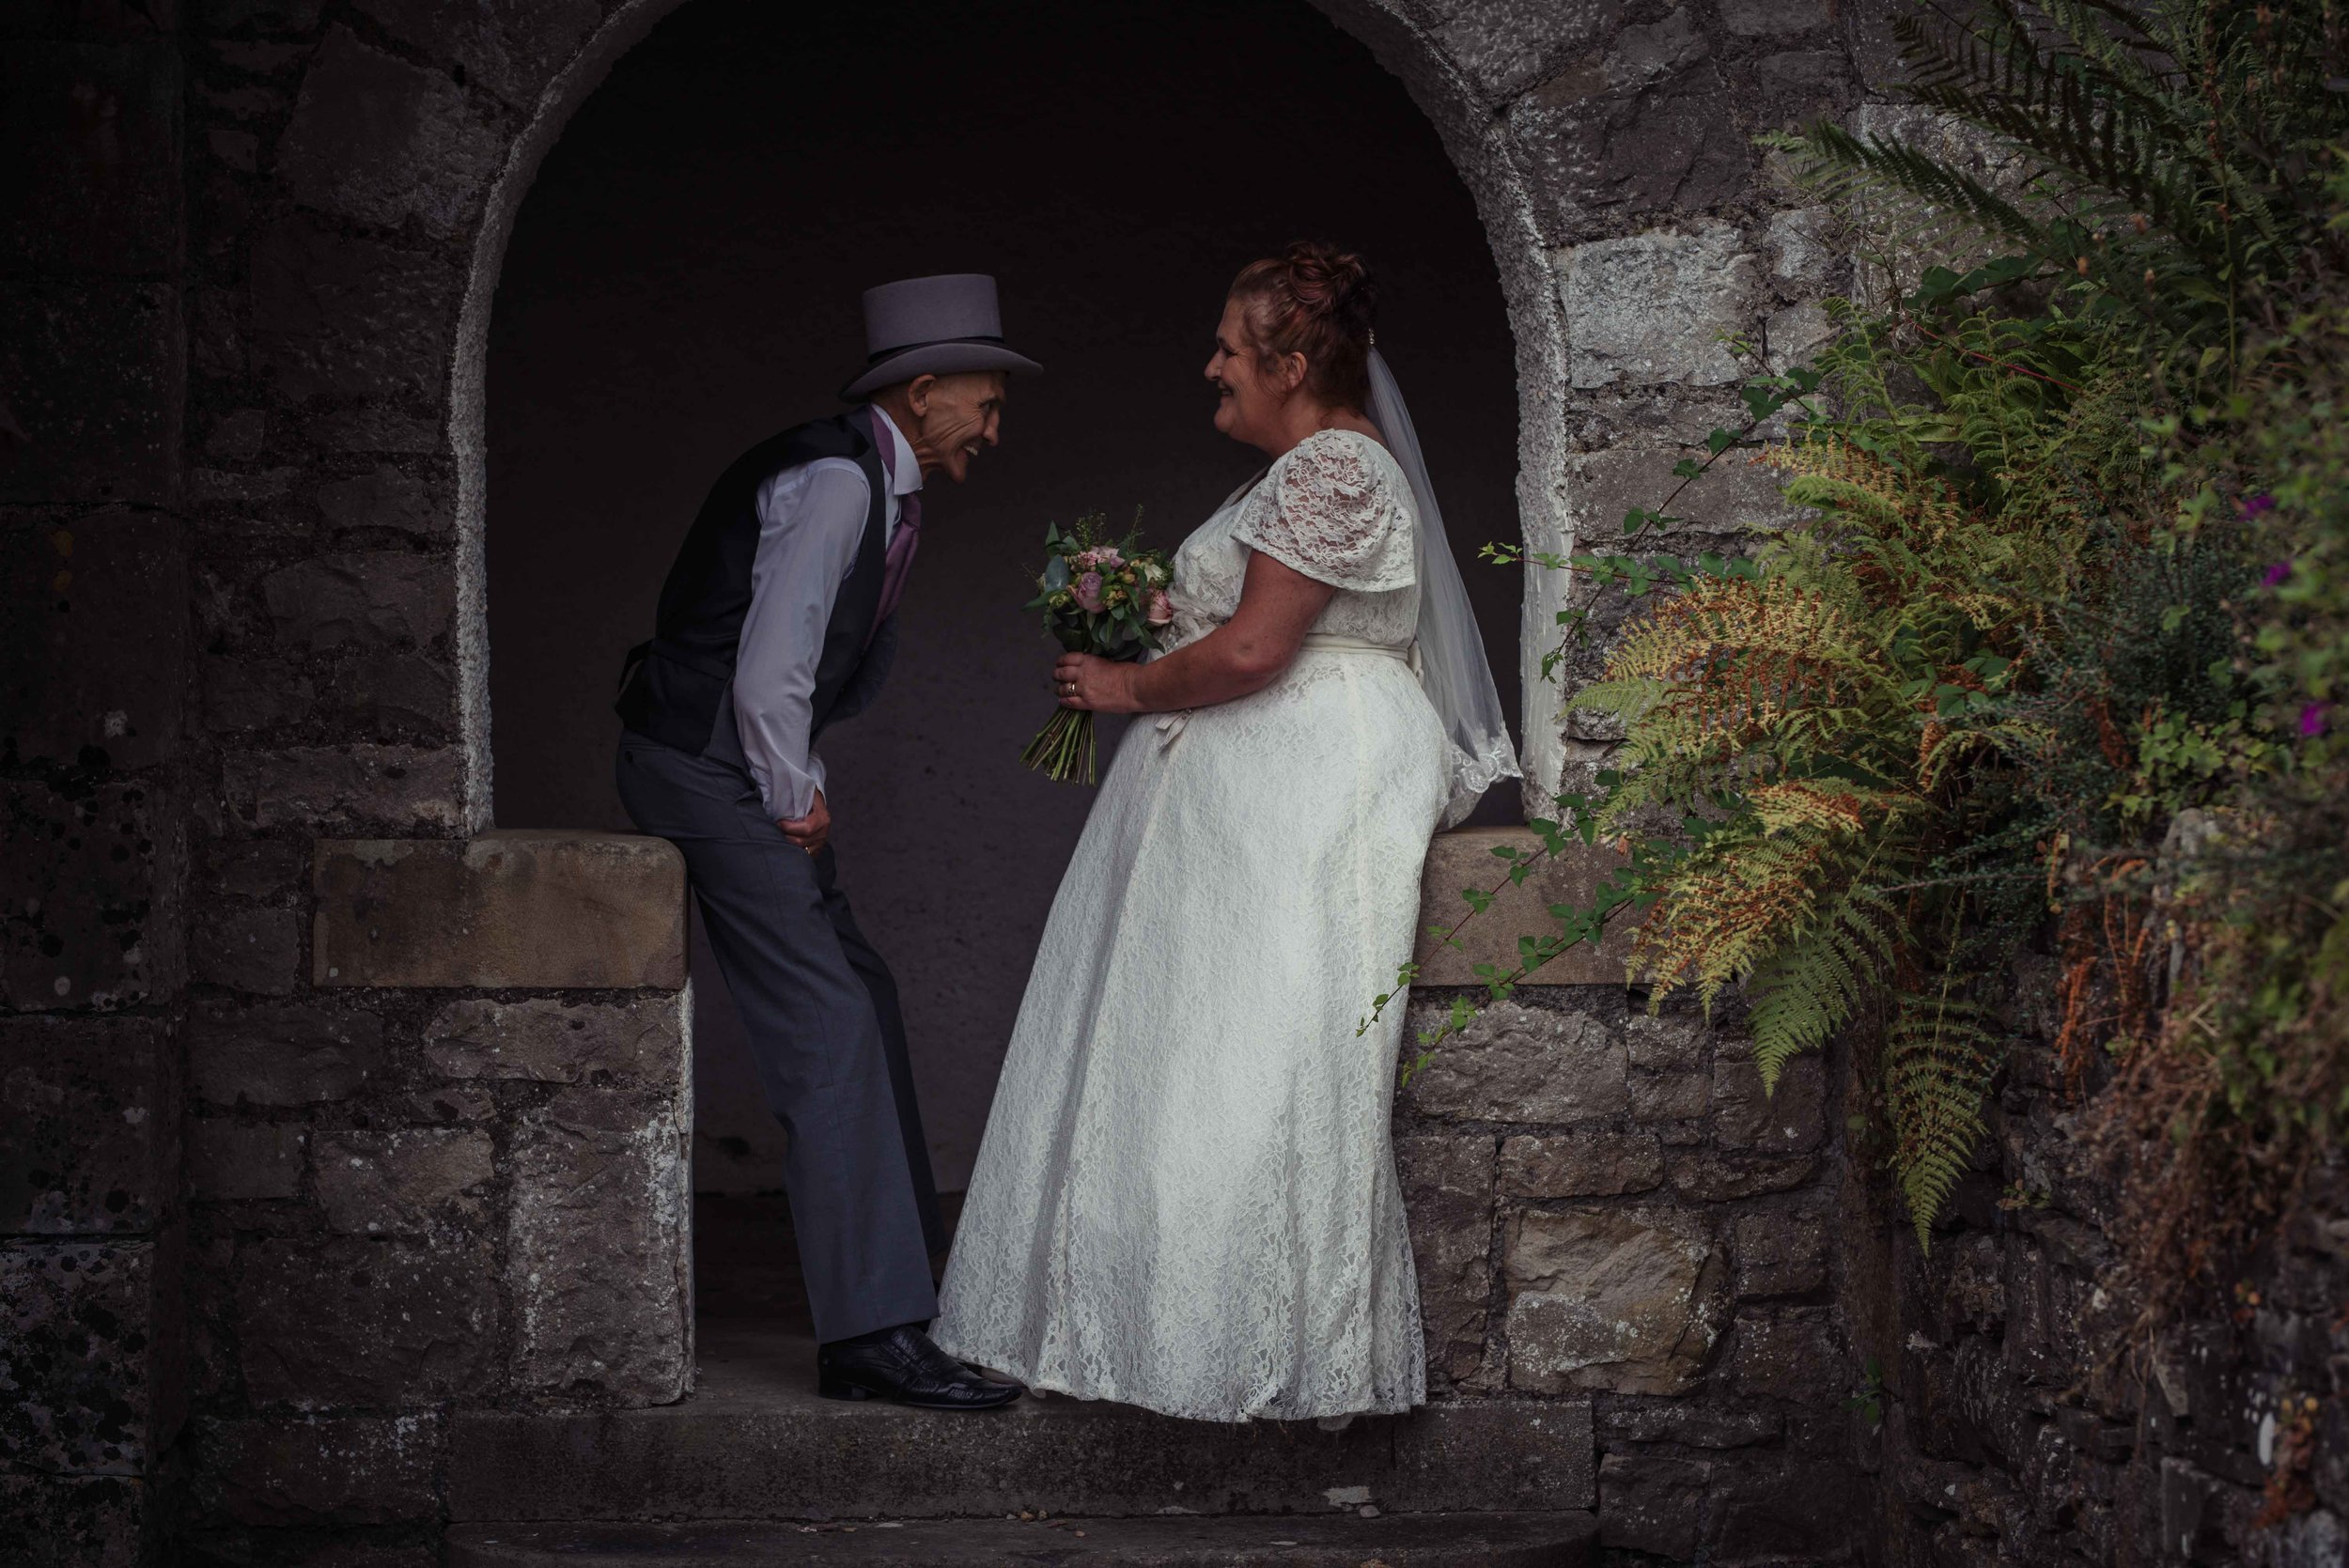 The bride and groom have an intimate moment together during their wedding photography at the castle green hotel